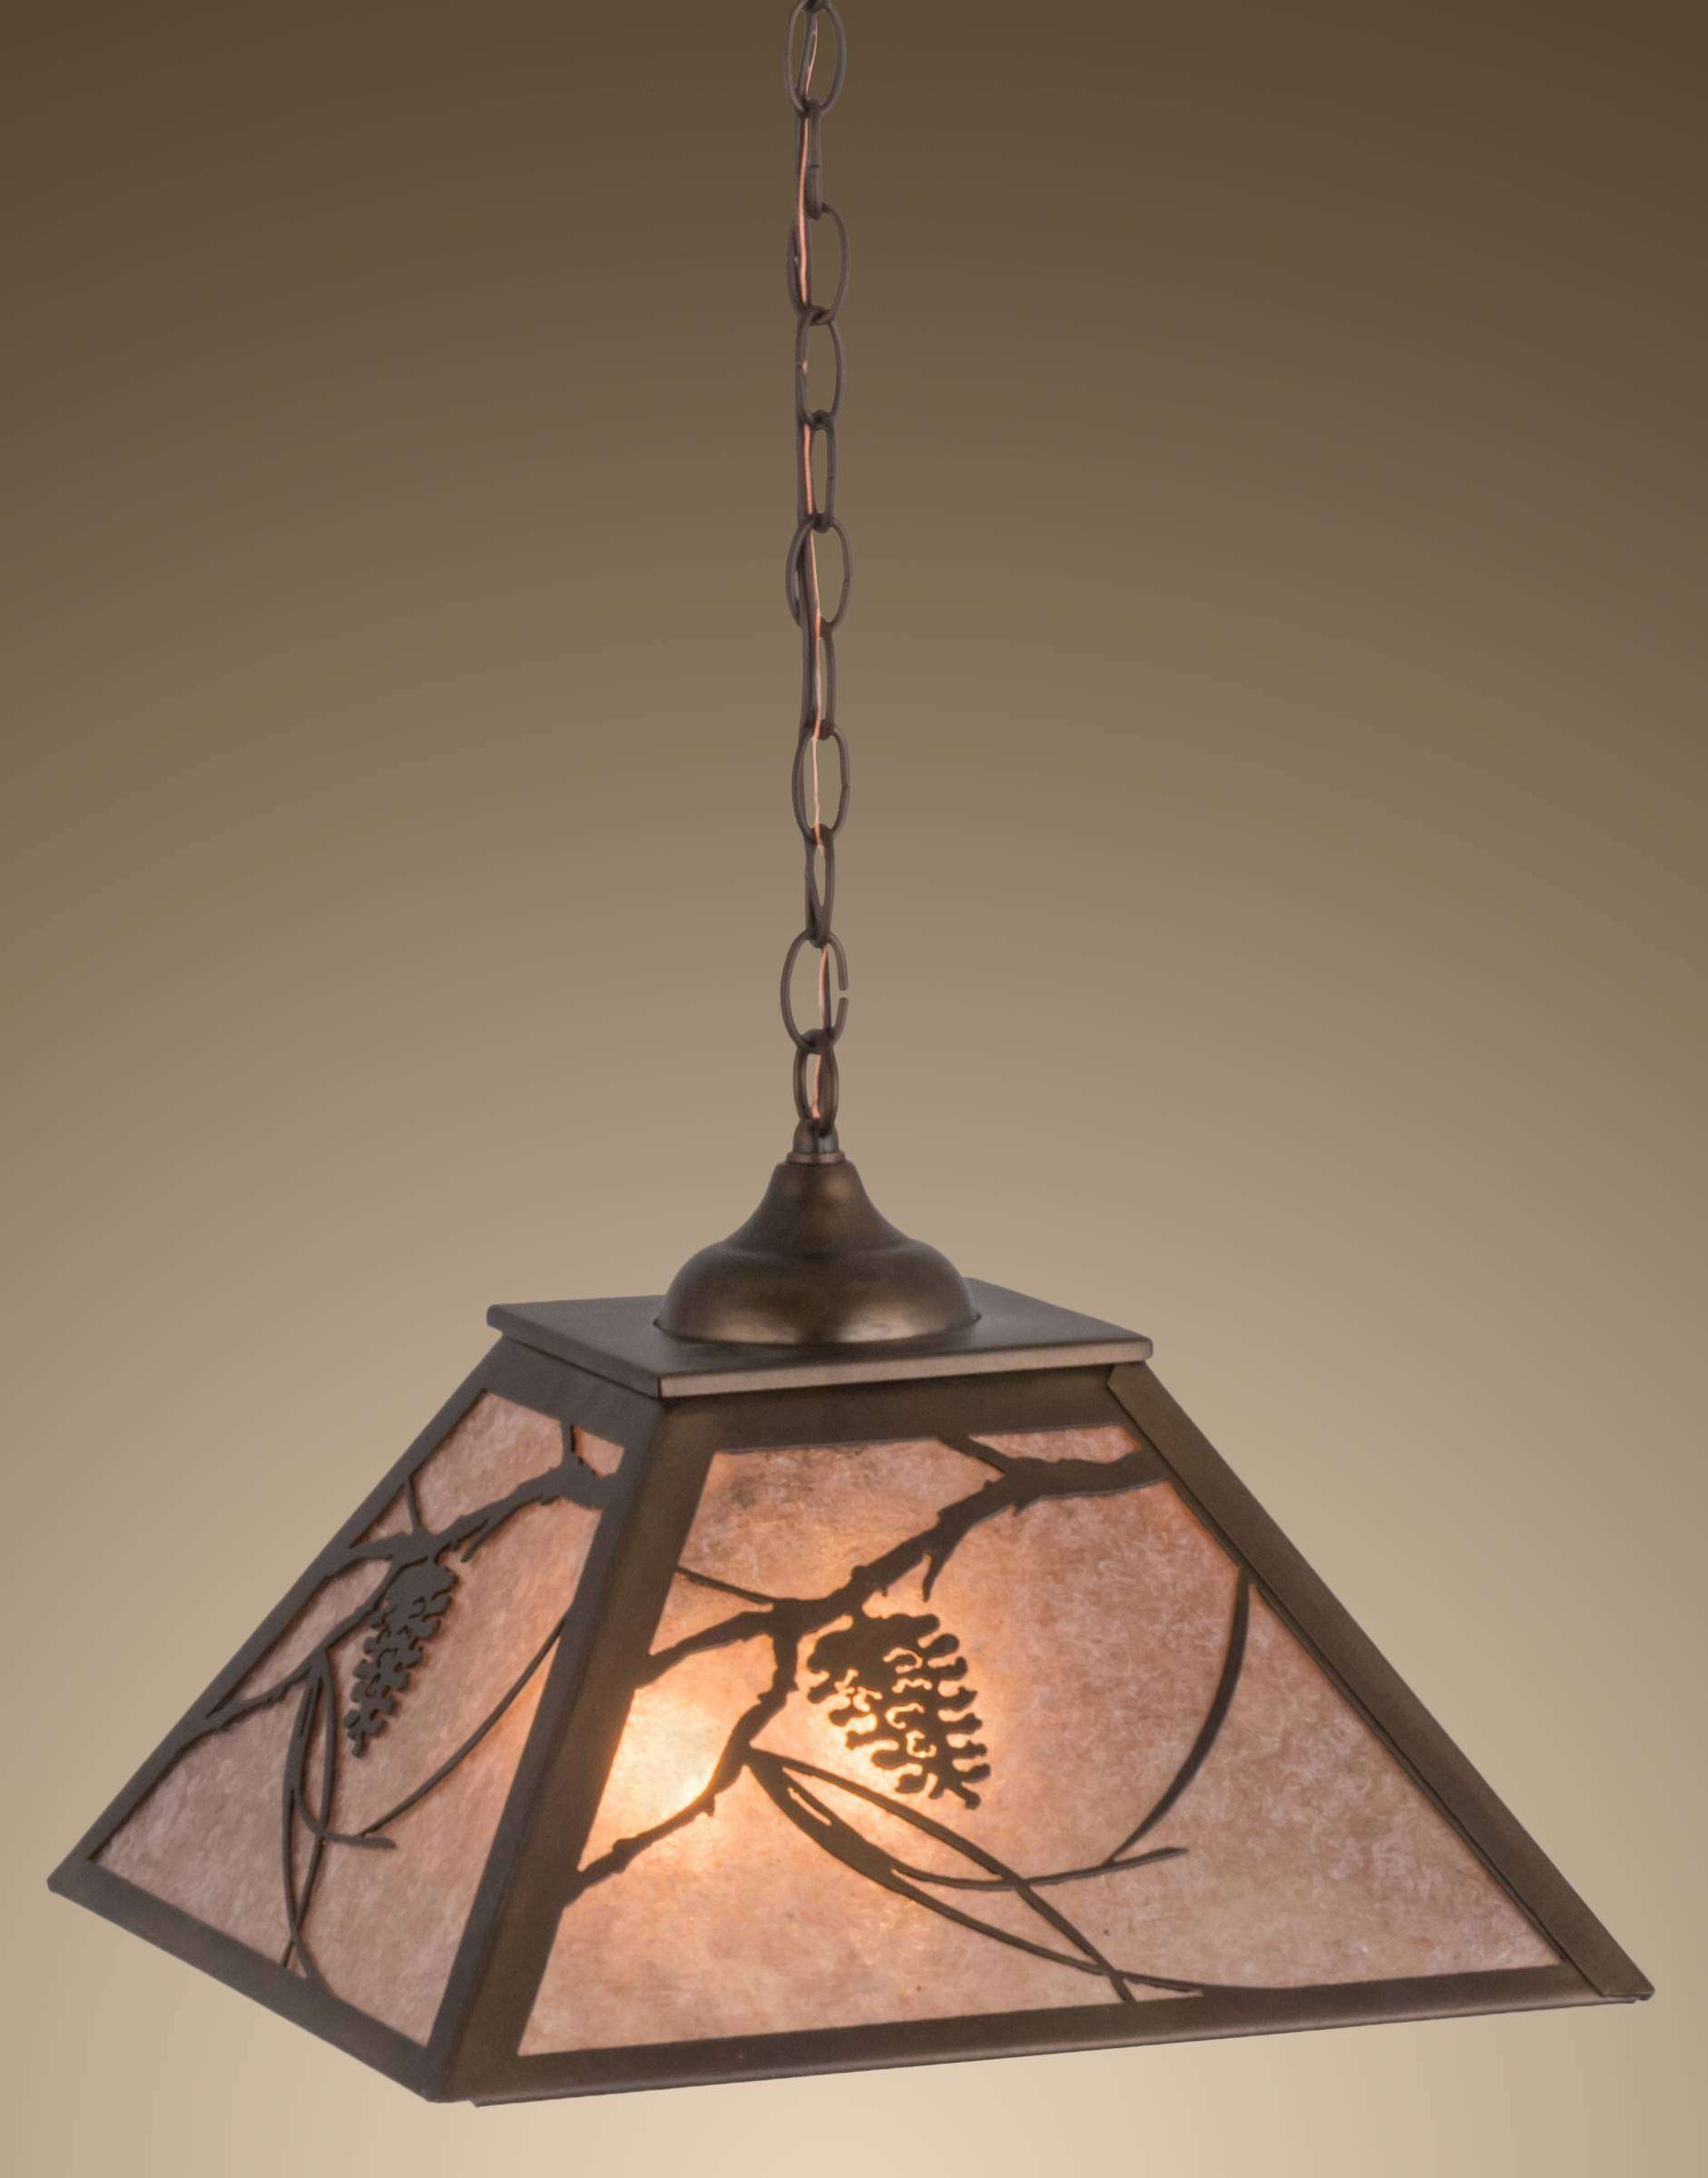 Meyda Tiffany 76316 Whispering Pines Pendant in Antique Copper finish with Silver Mica